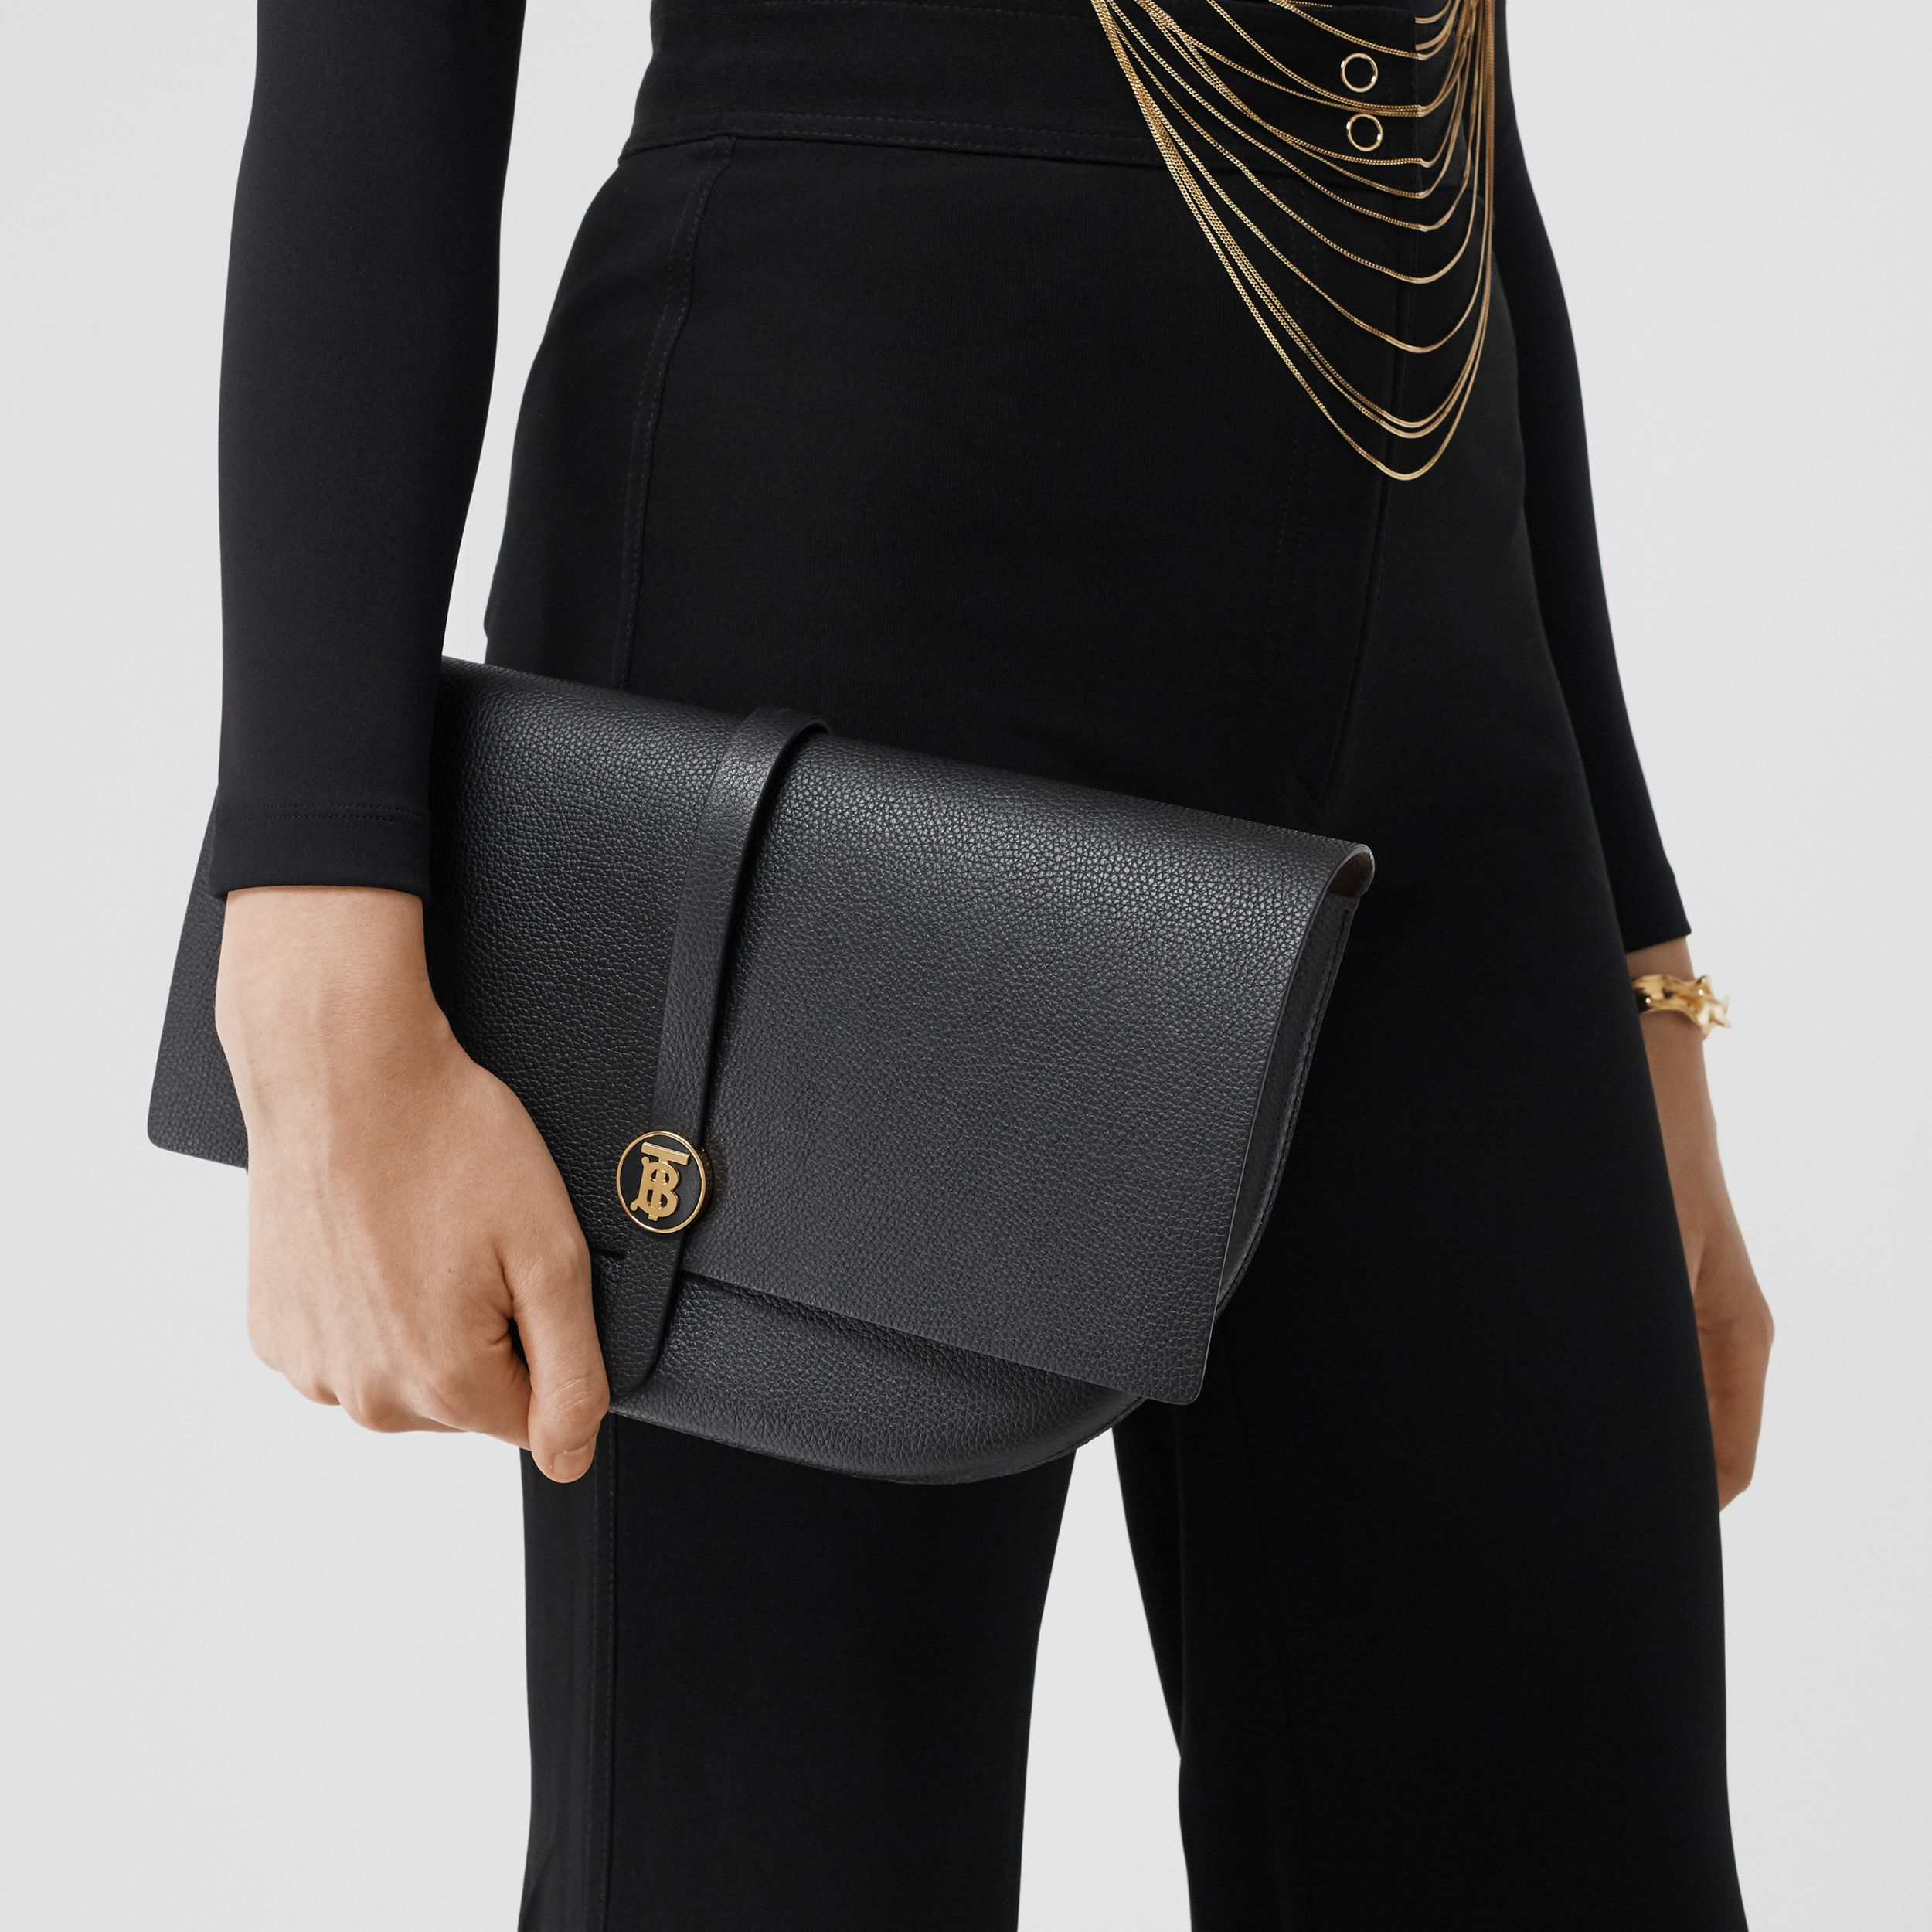 Grainy Leather Anne Clutch in Black - Women | Burberry - 3